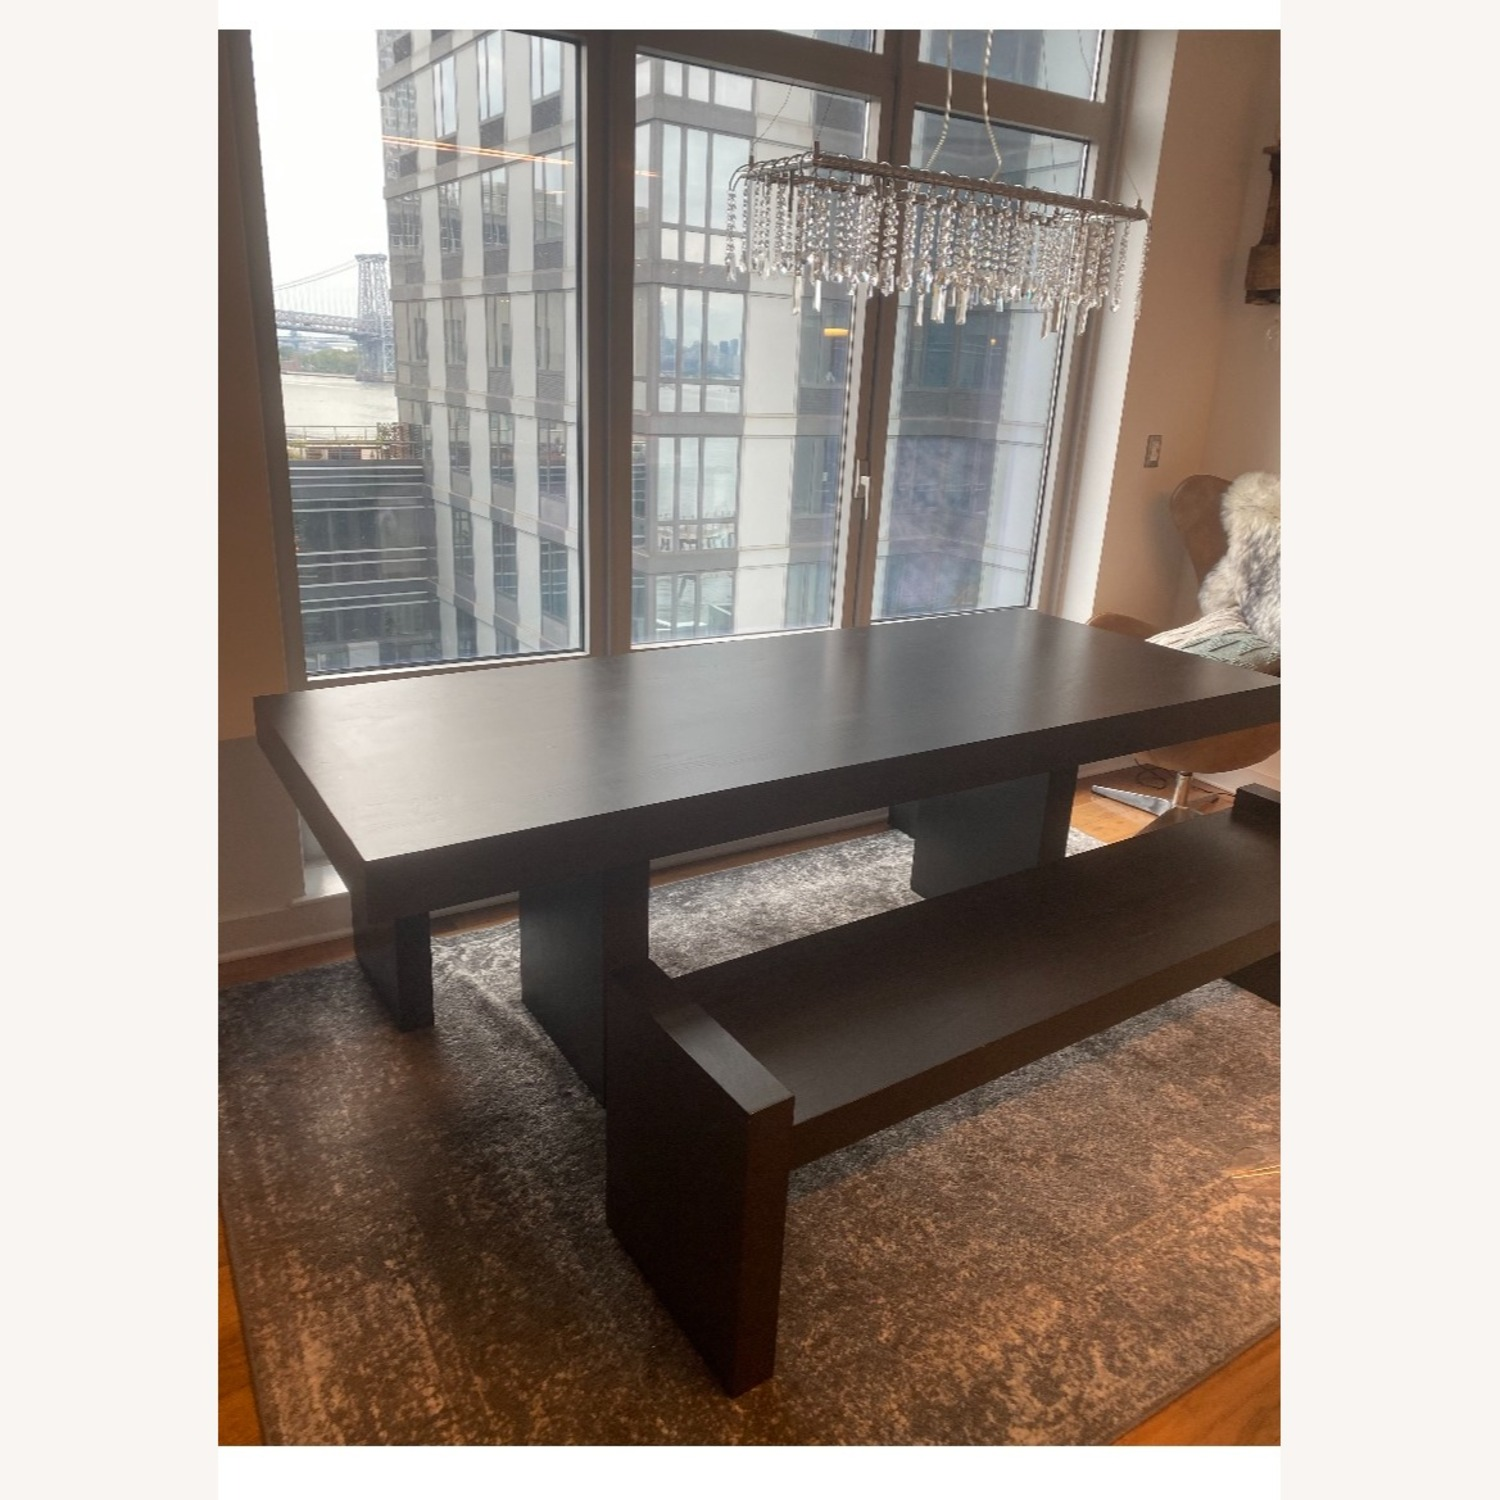 West Elm Terra Dining Table and 2 Benches - image-1